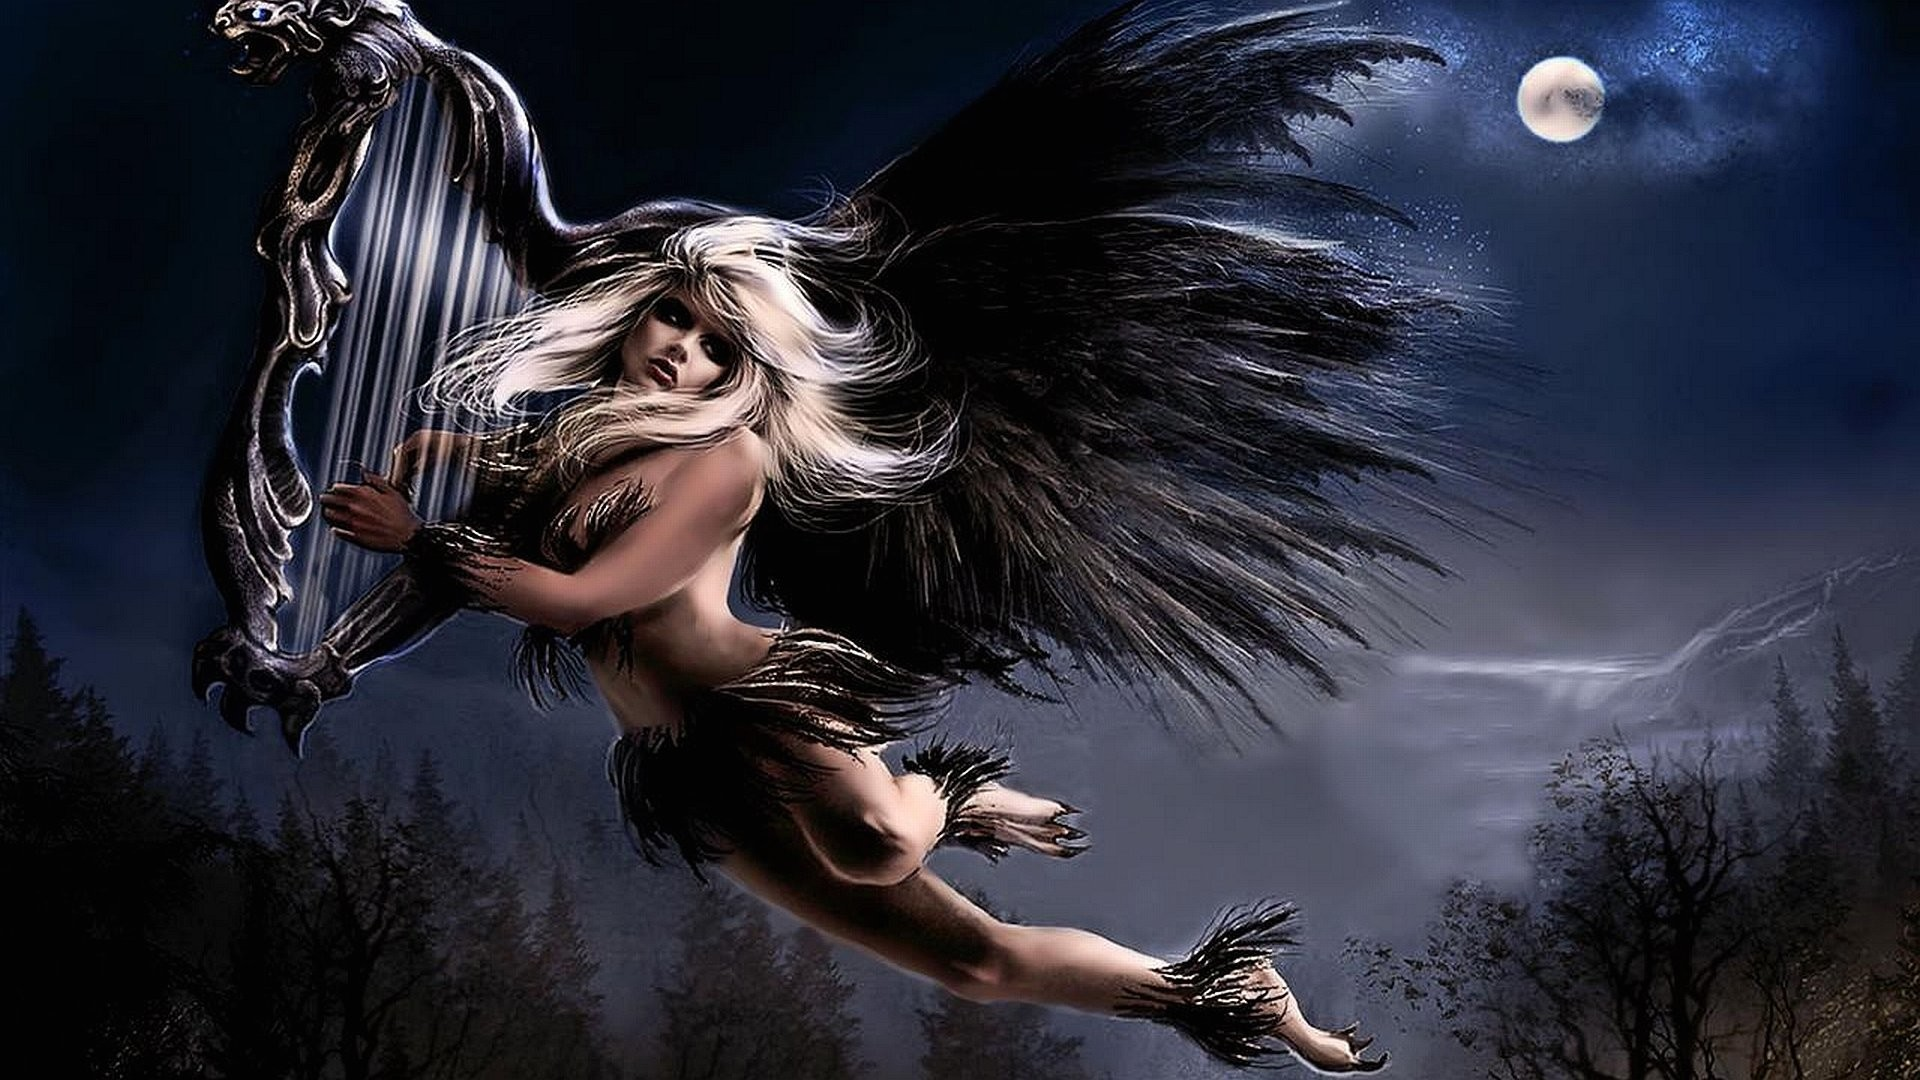 1920x1080 Wallpaper dark angel